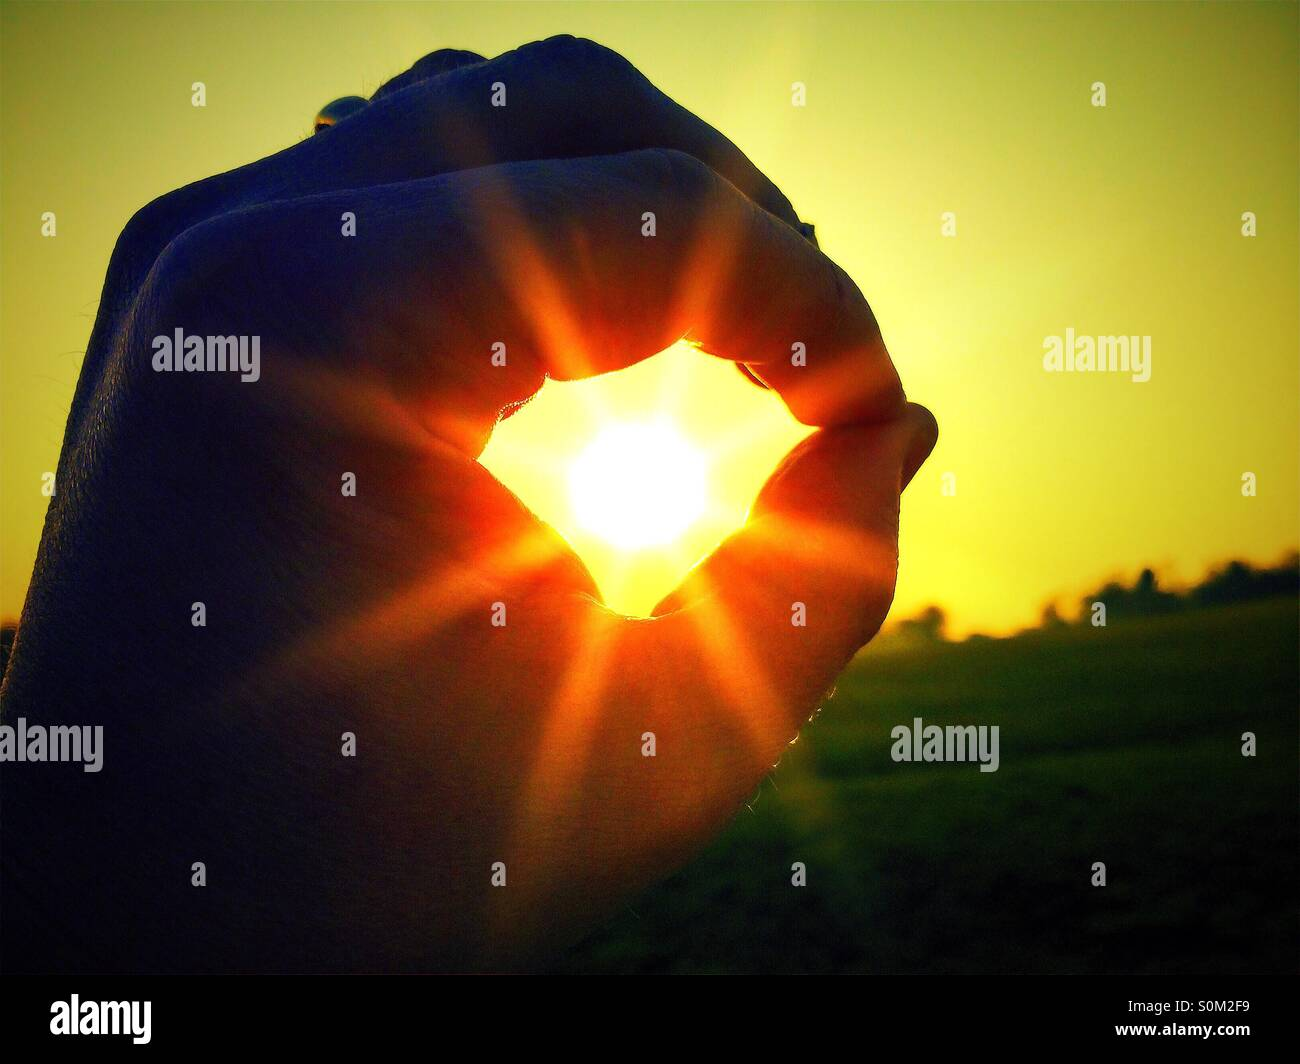 Sun in the Hand - Stock Image